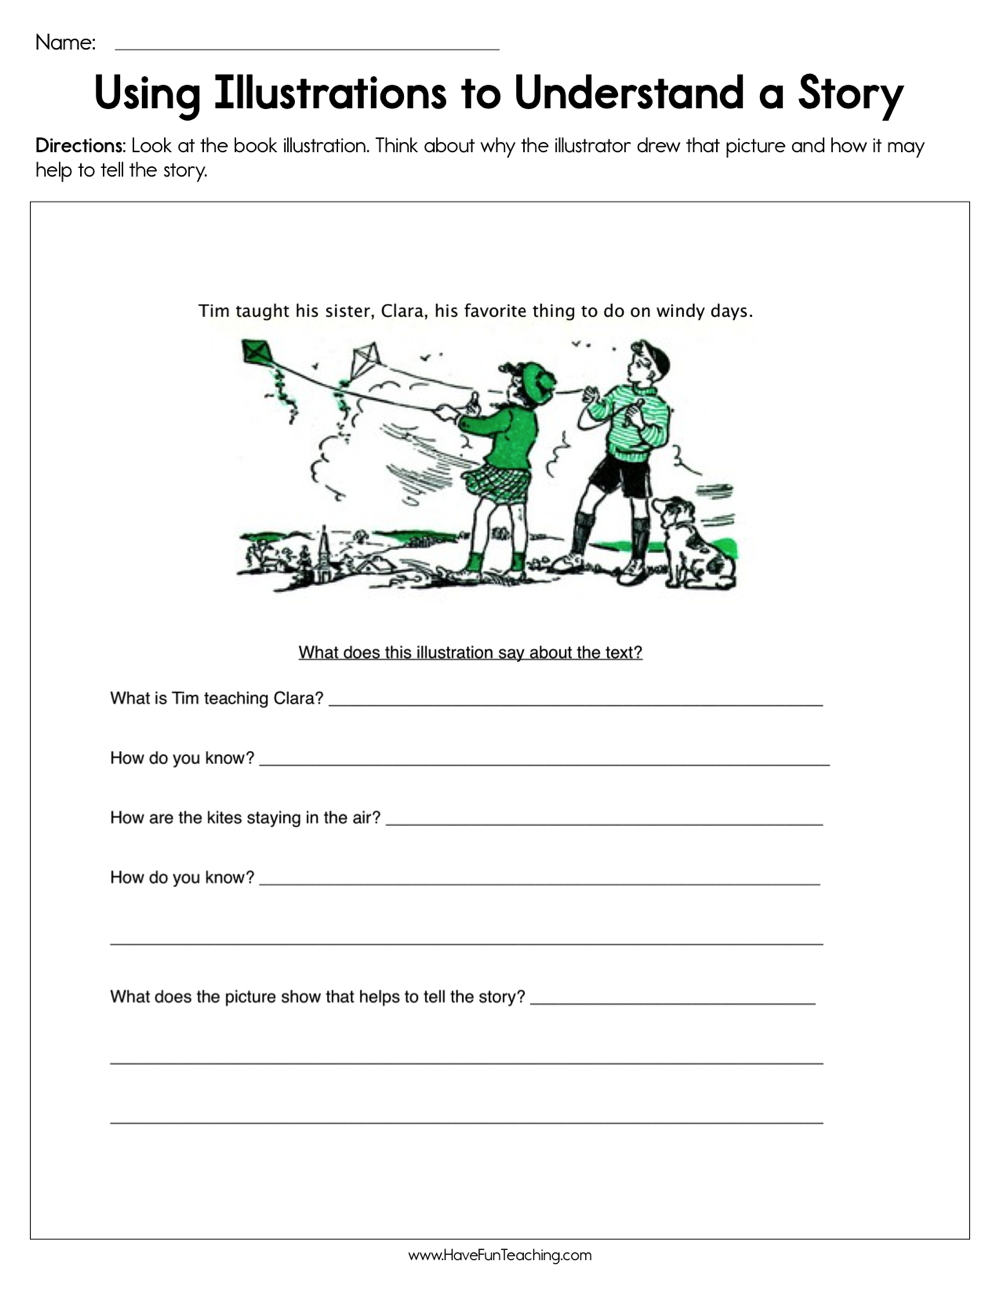 Using Illustrations to Understand a Story Worksheet | Have ...